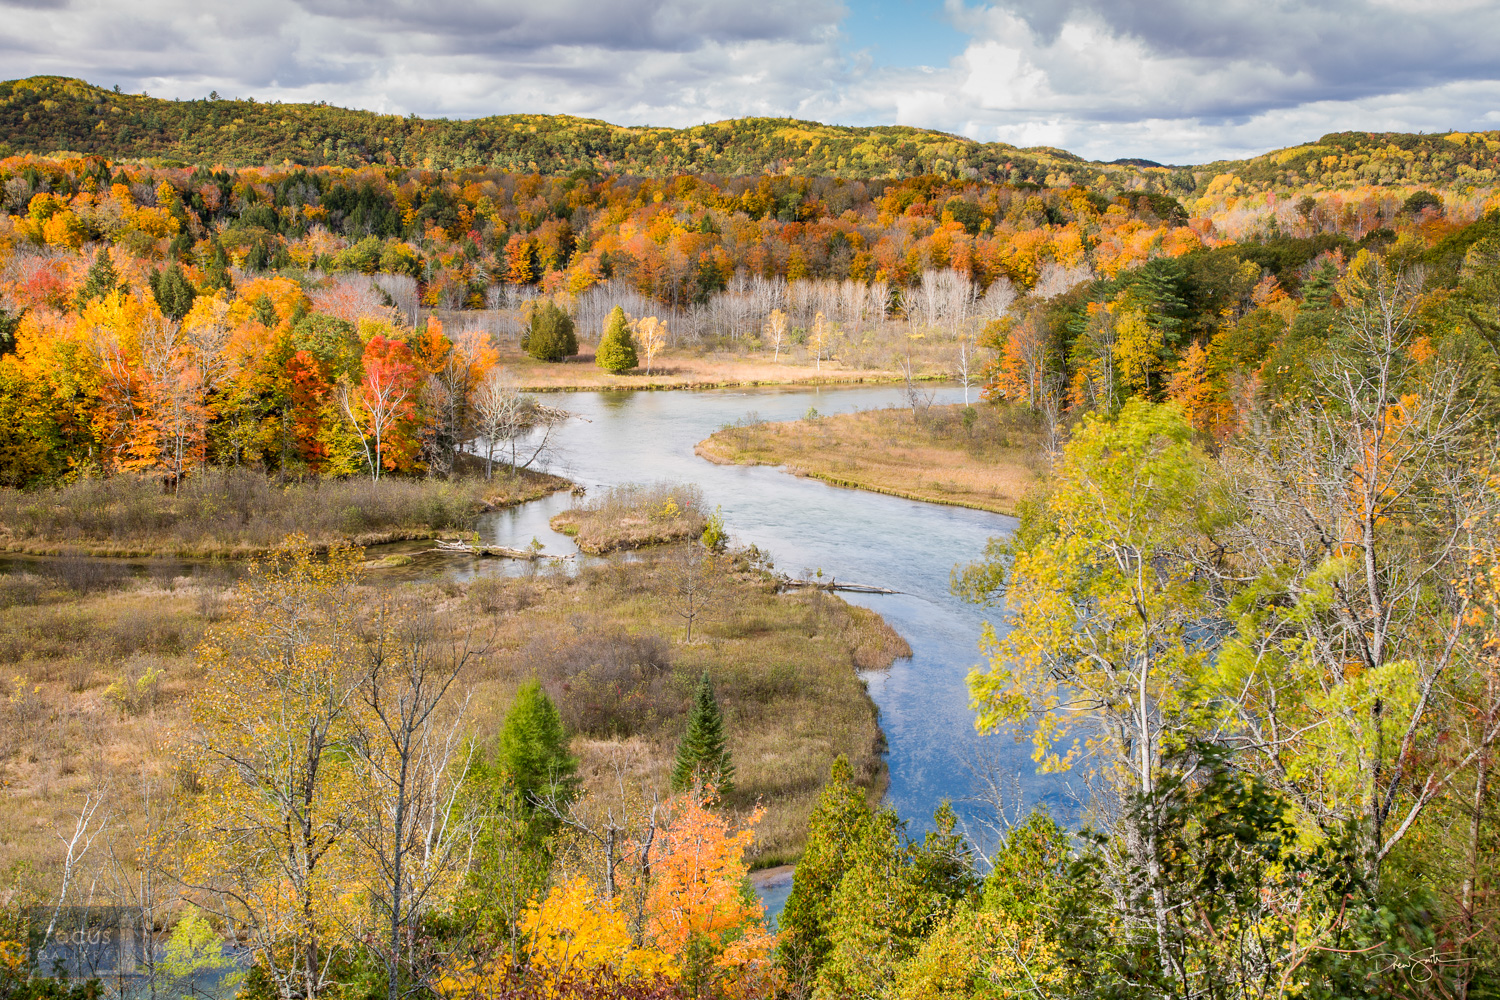 View of a bend in the Manistee River in fall colors.